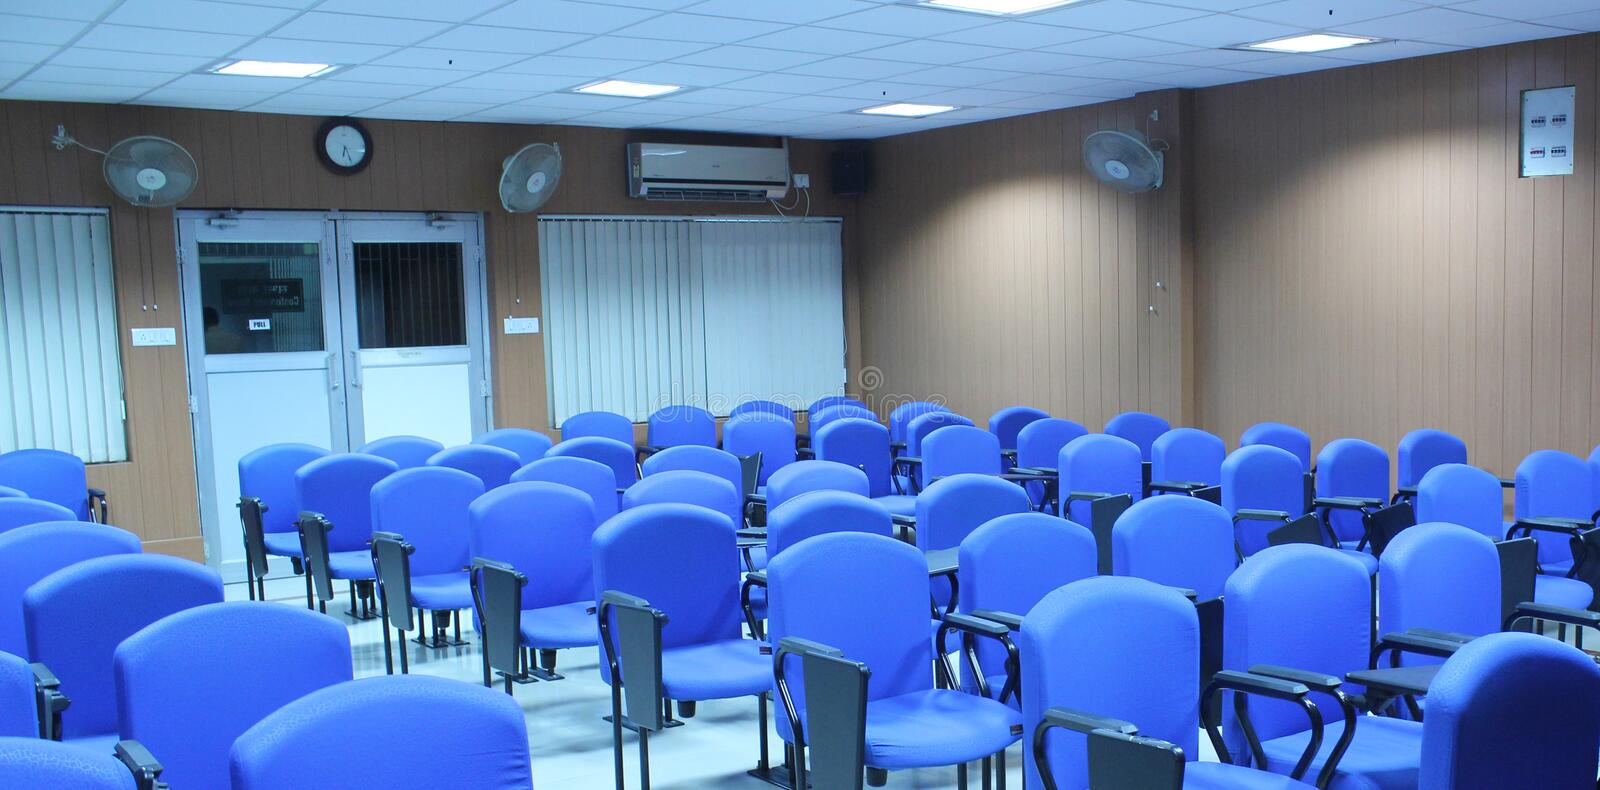 Chairs in a class room. Chairs and desks in a class room in a row royalty free stock images